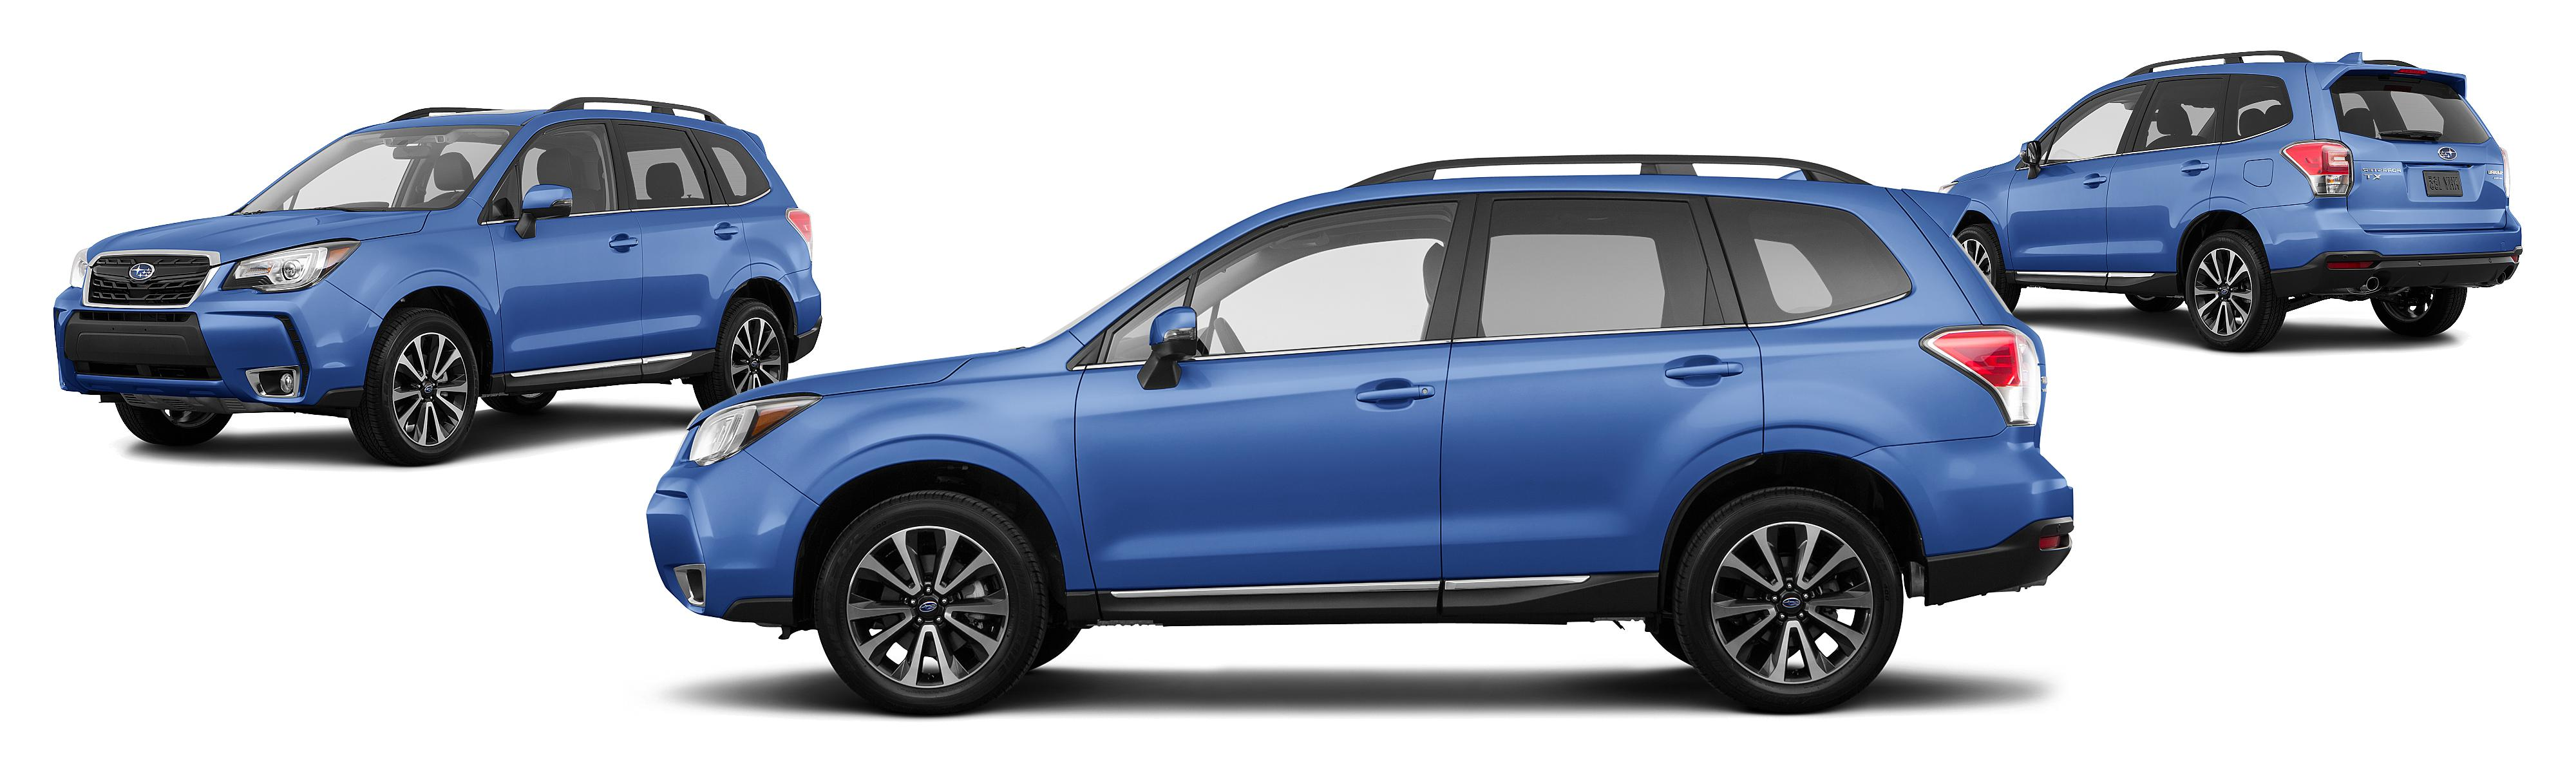 2017 Subaru Forester AWD 2 0XT Touring 4dr Wagon - Research